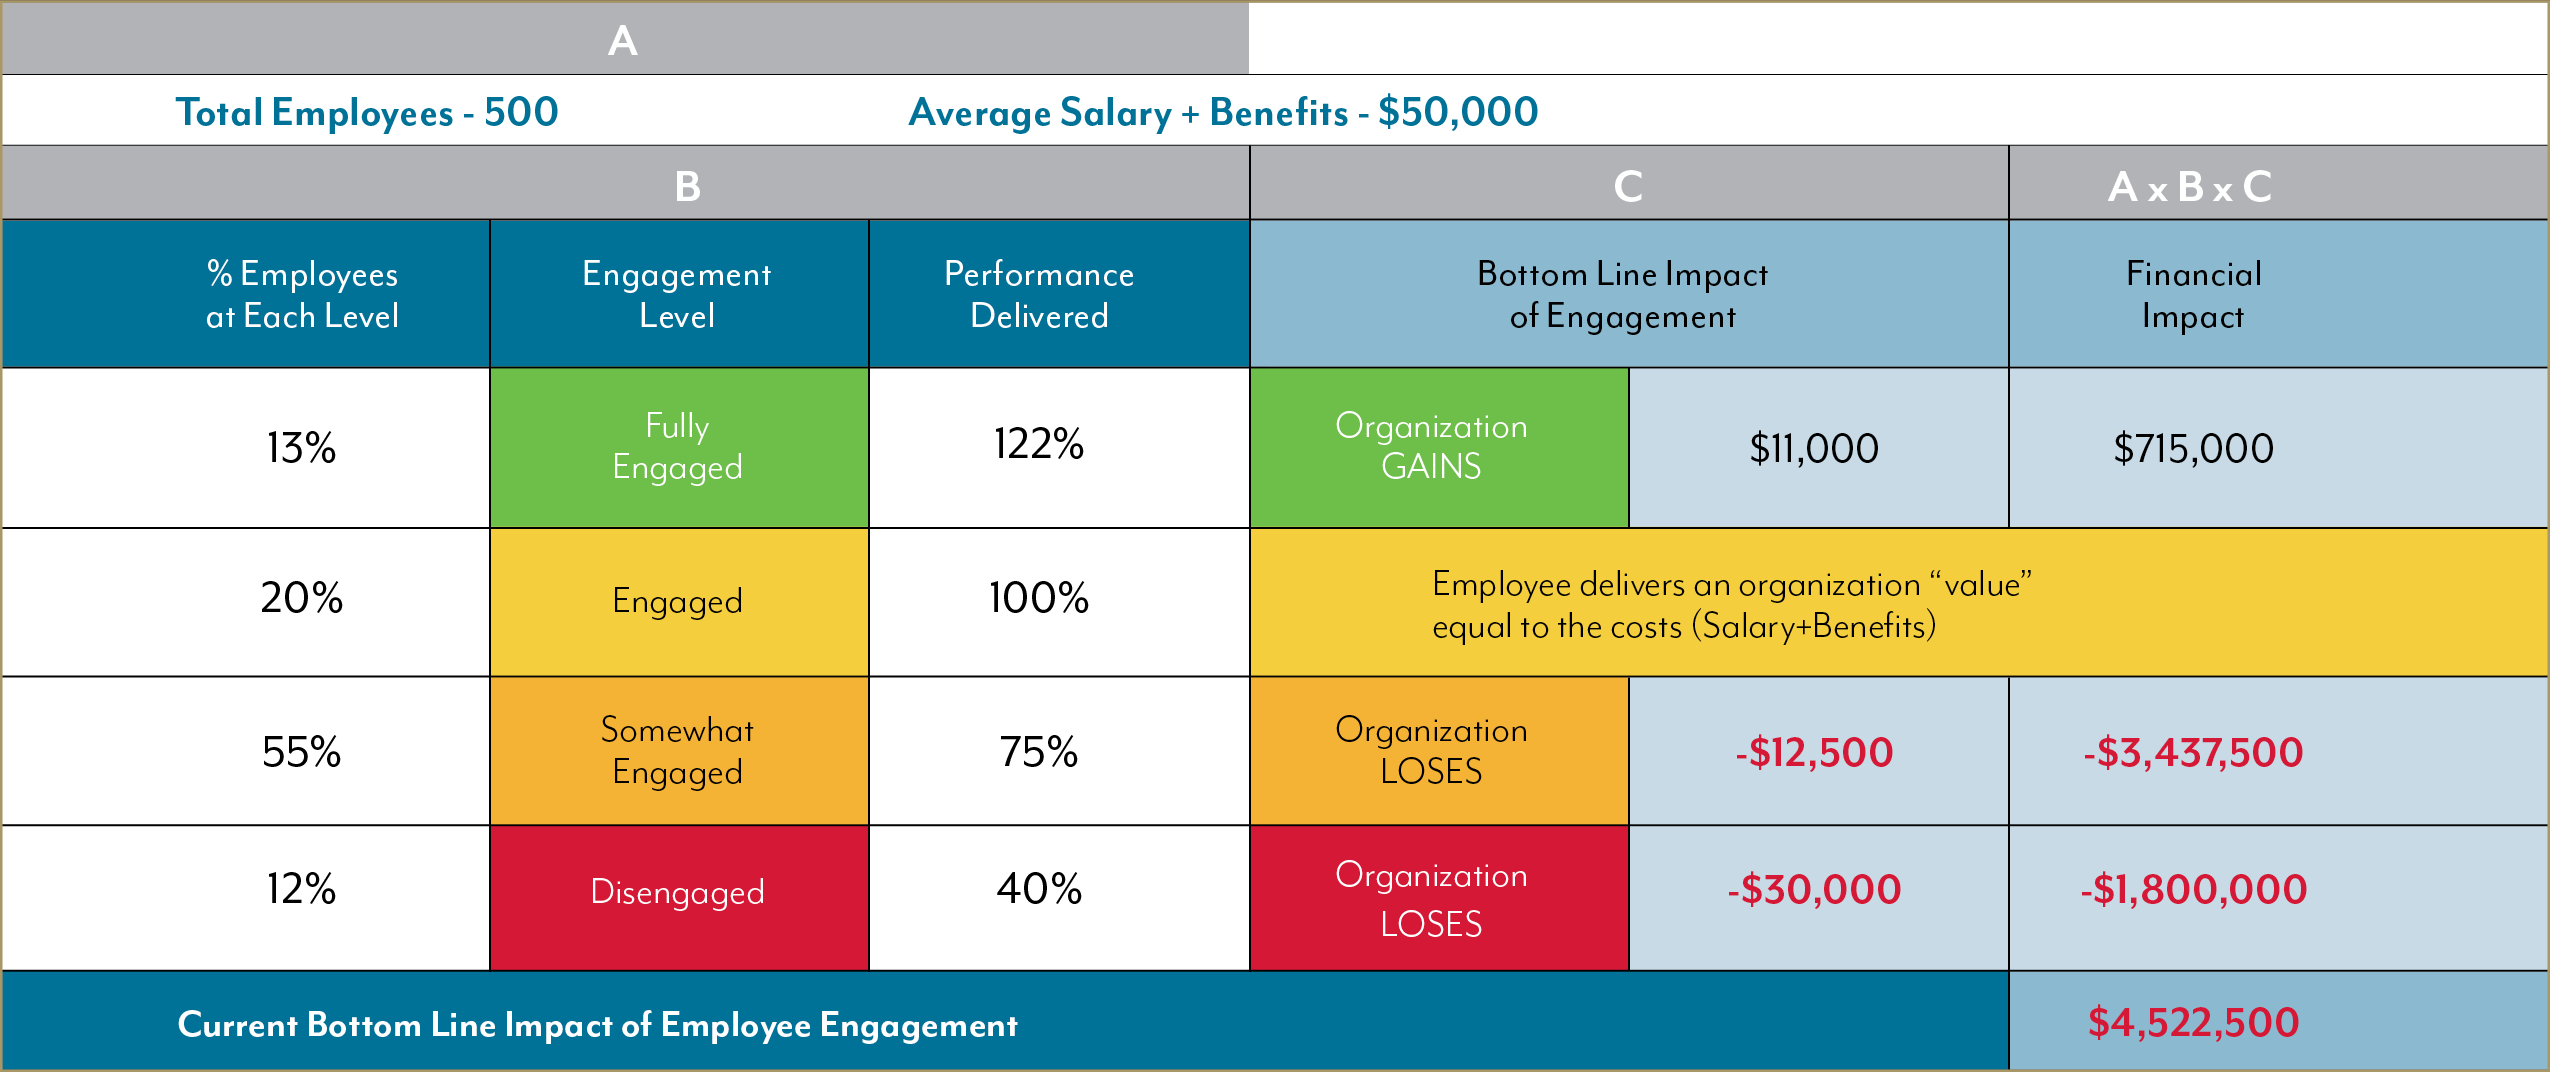 How to Calculate Employee Engagement's Impact on Productivity